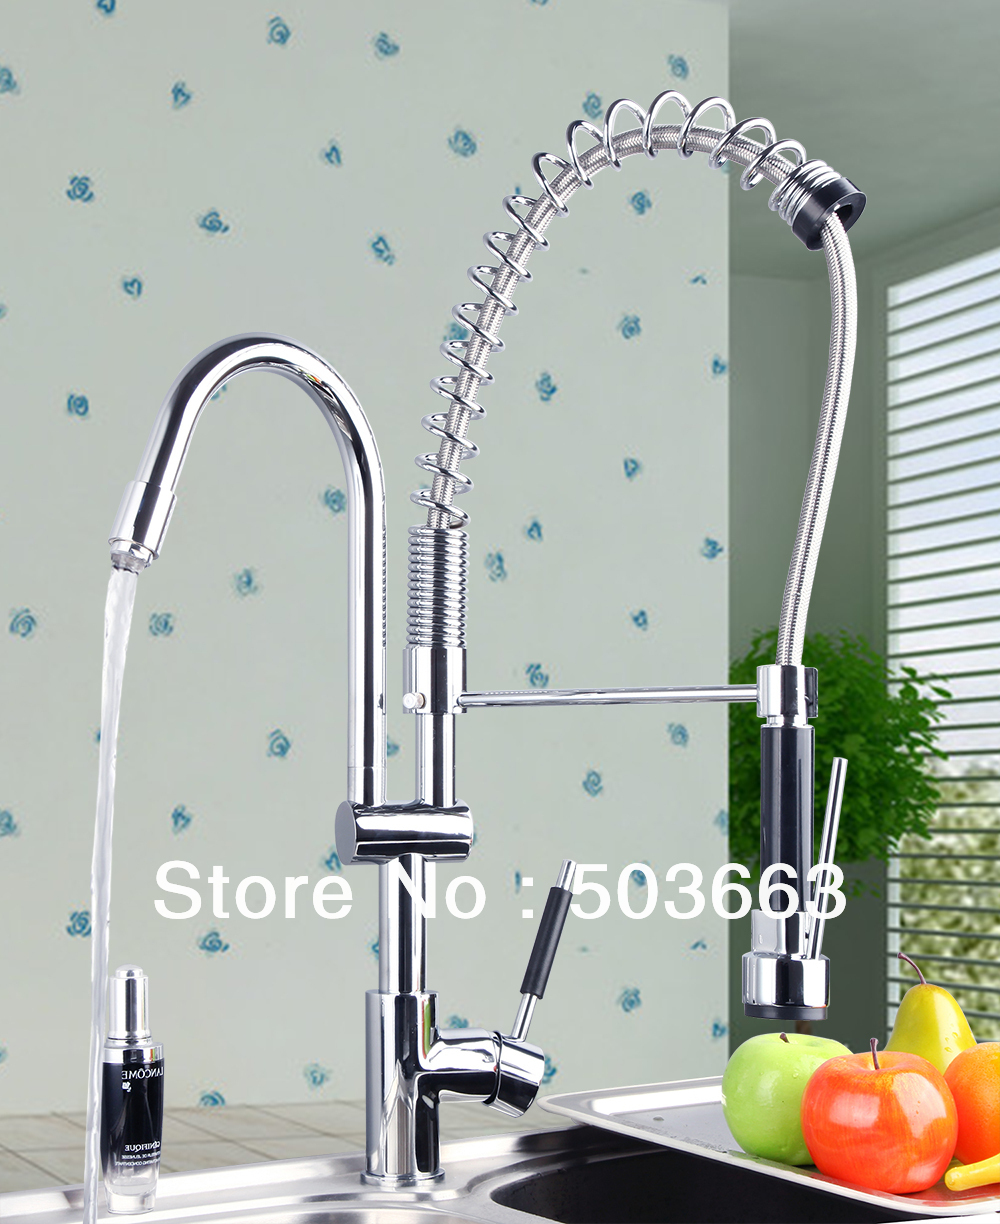 Double Handles Free Chrome Brass Water Kitchen Faucet Swivel Spout Pull Out Vessel Sink Single Handle Mixer Tap MF-268 360 hot double handles free brass water kitchen faucet swivel spout pull out vessel sink ceramic mixer tap mf 284 faucet